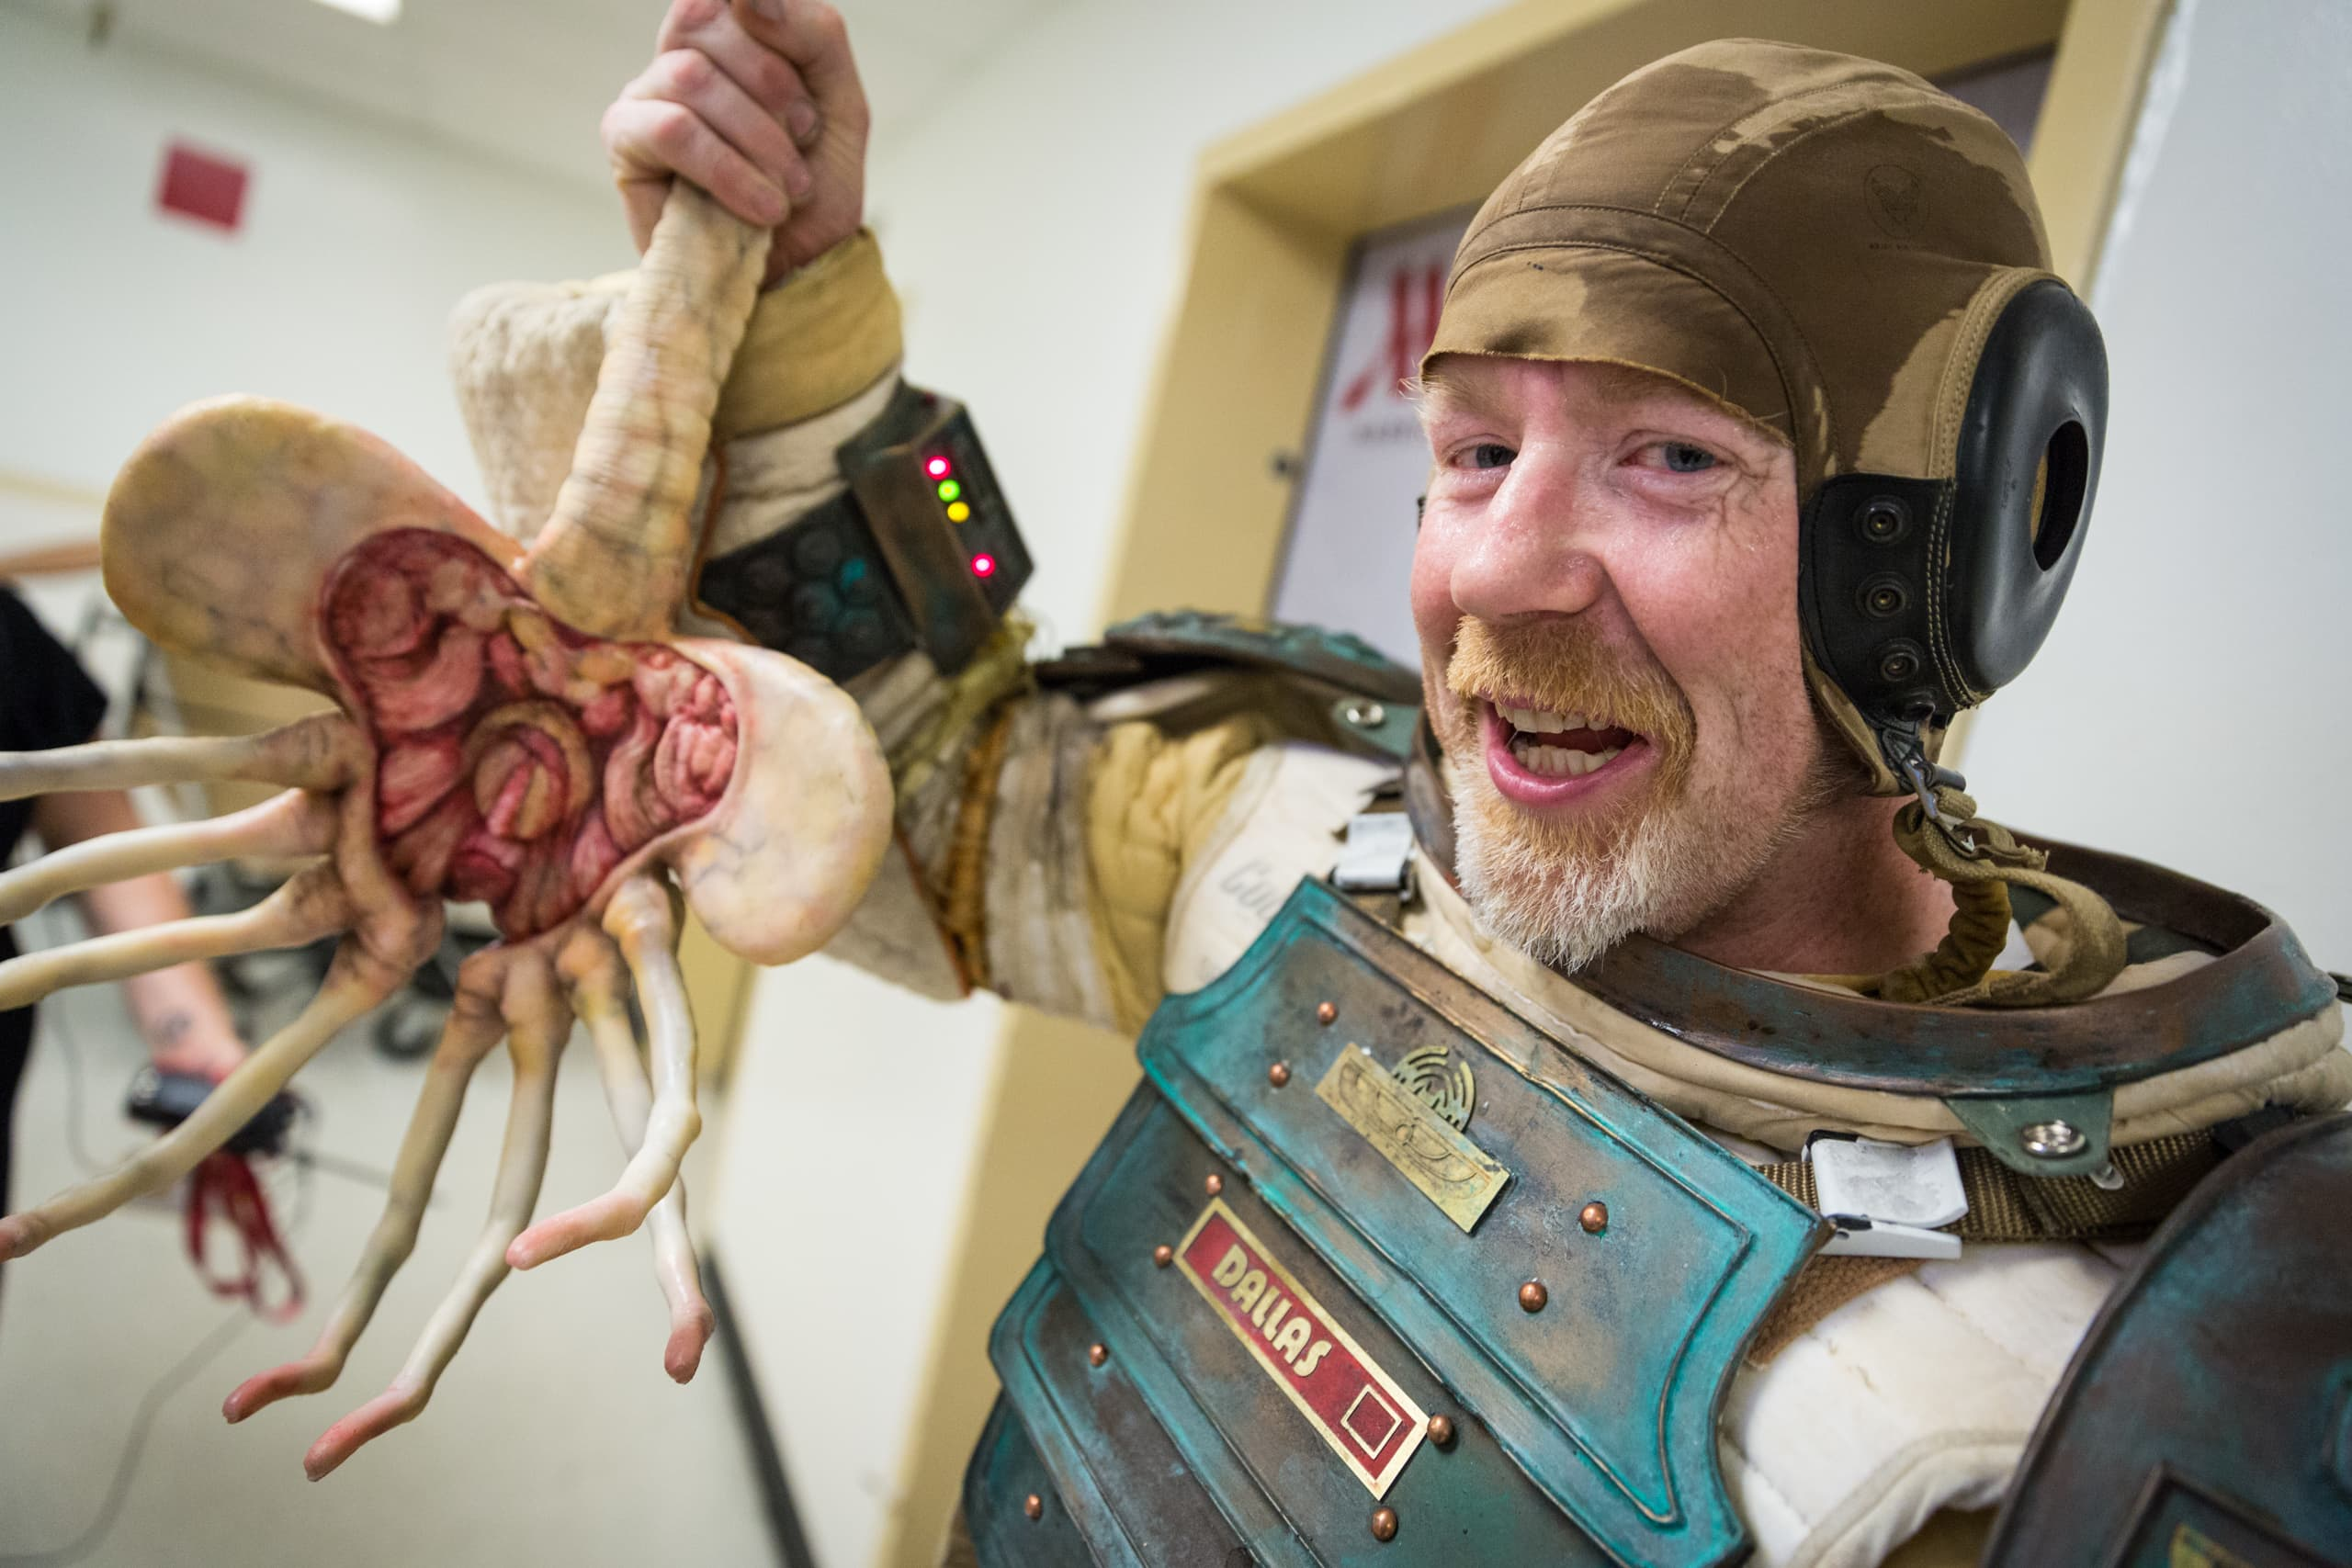 Mythbusters' Adam Savage spent 14 years and over $15,000 building a single Comic-Con costume